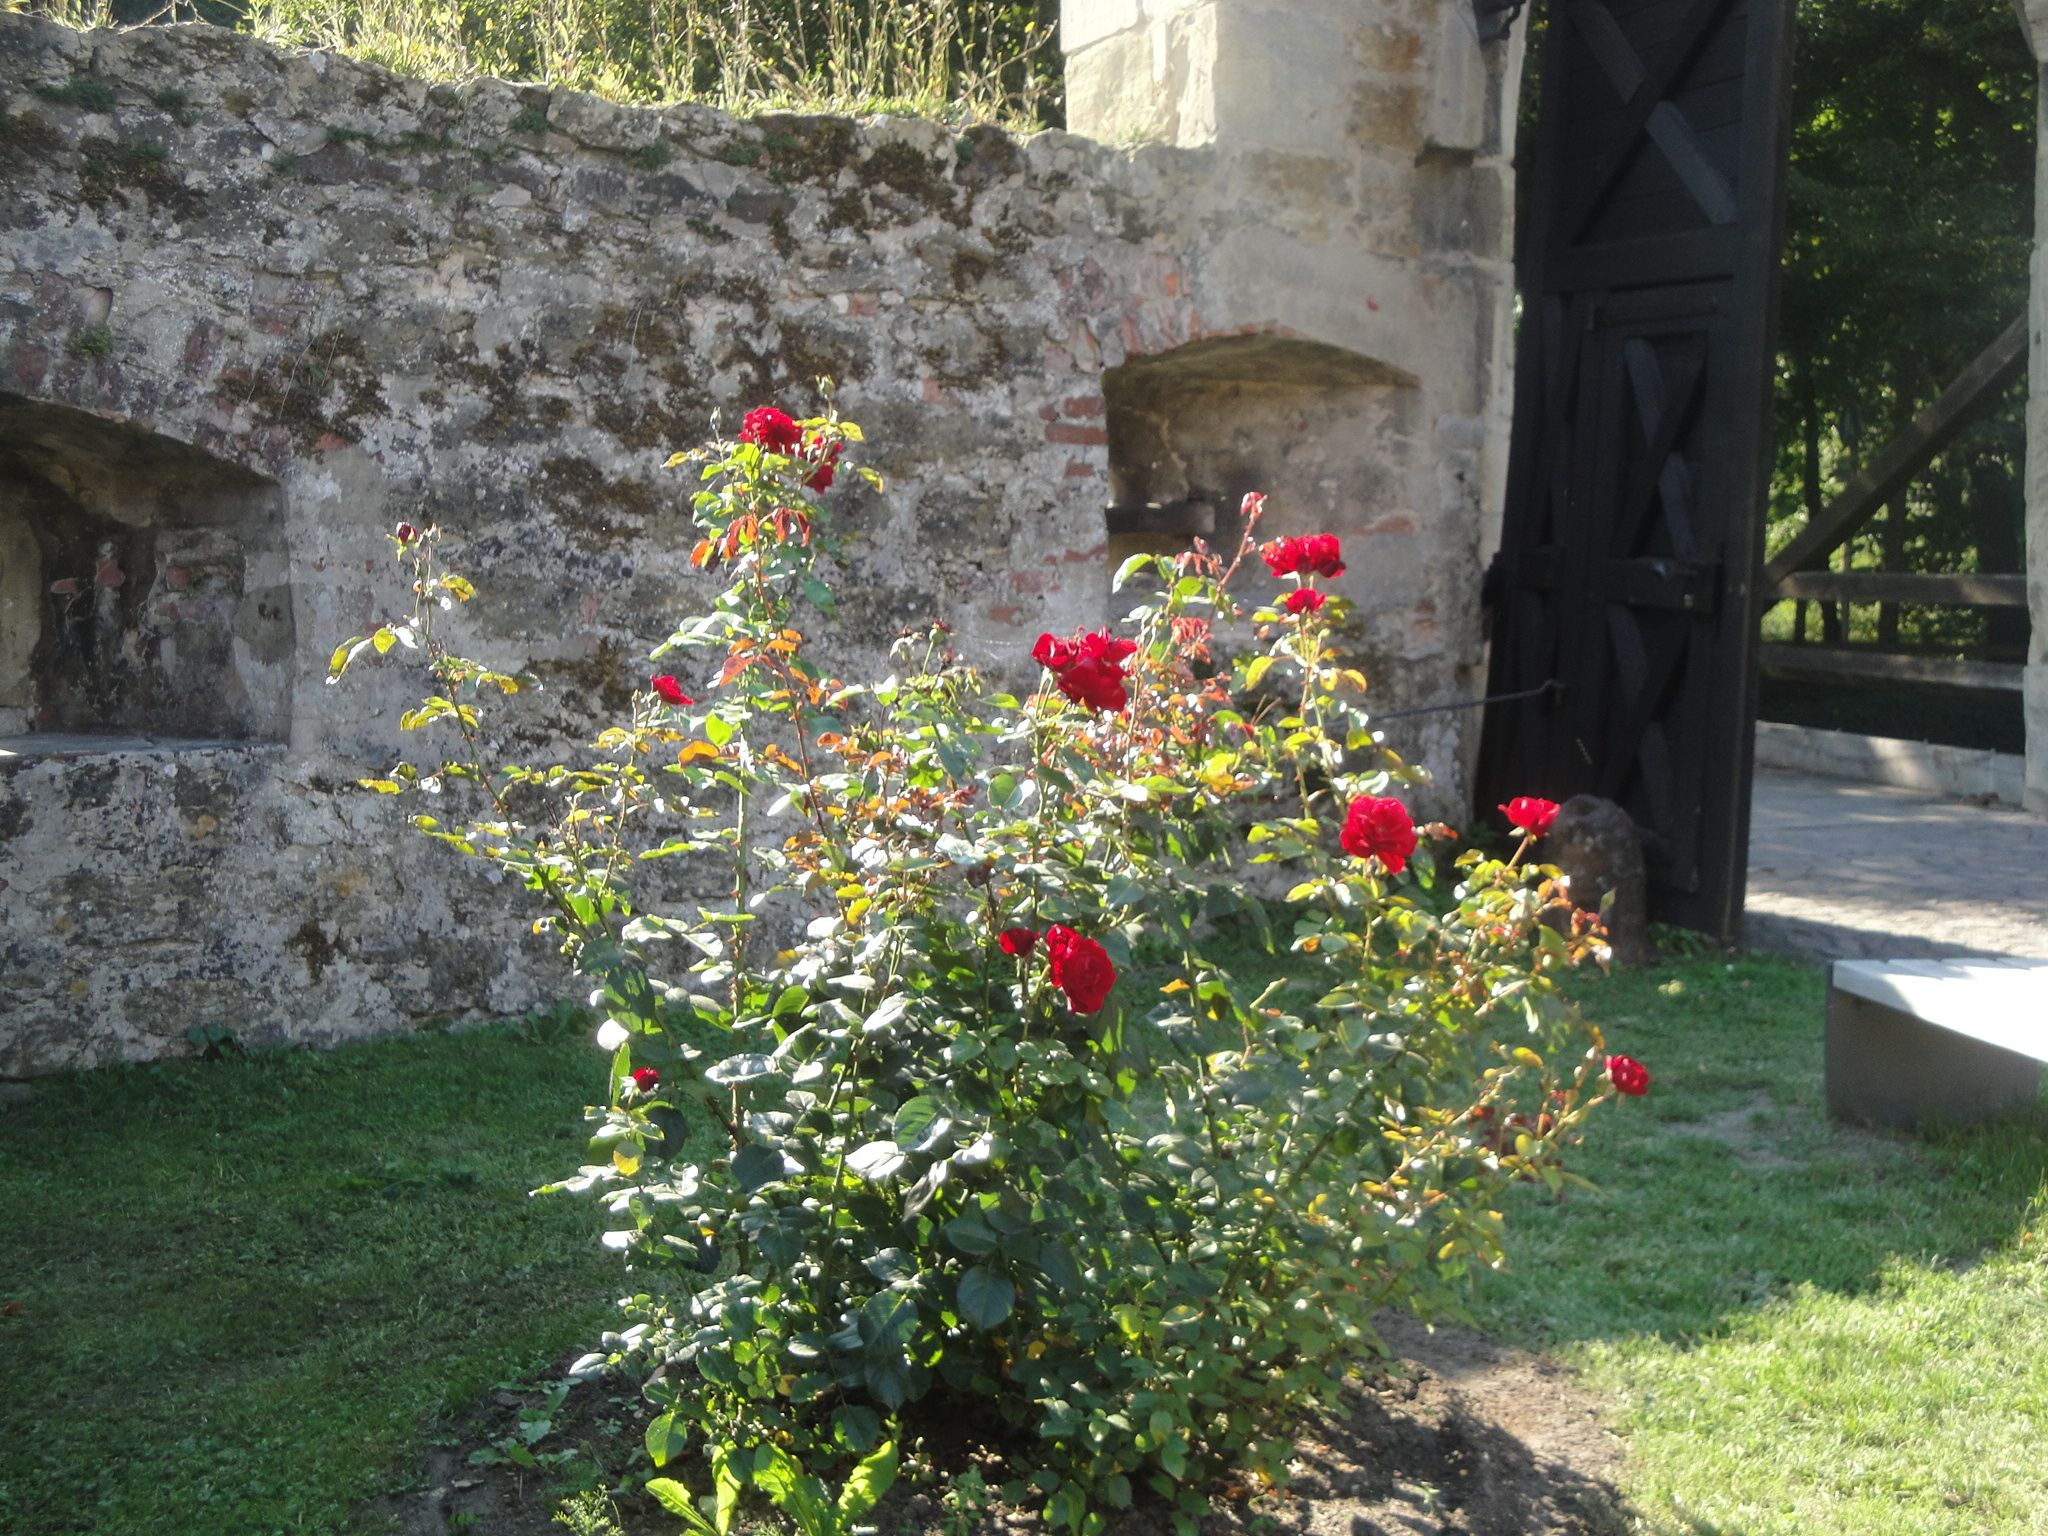 Part of a medieval garden belonging to a castle along the Rhine River